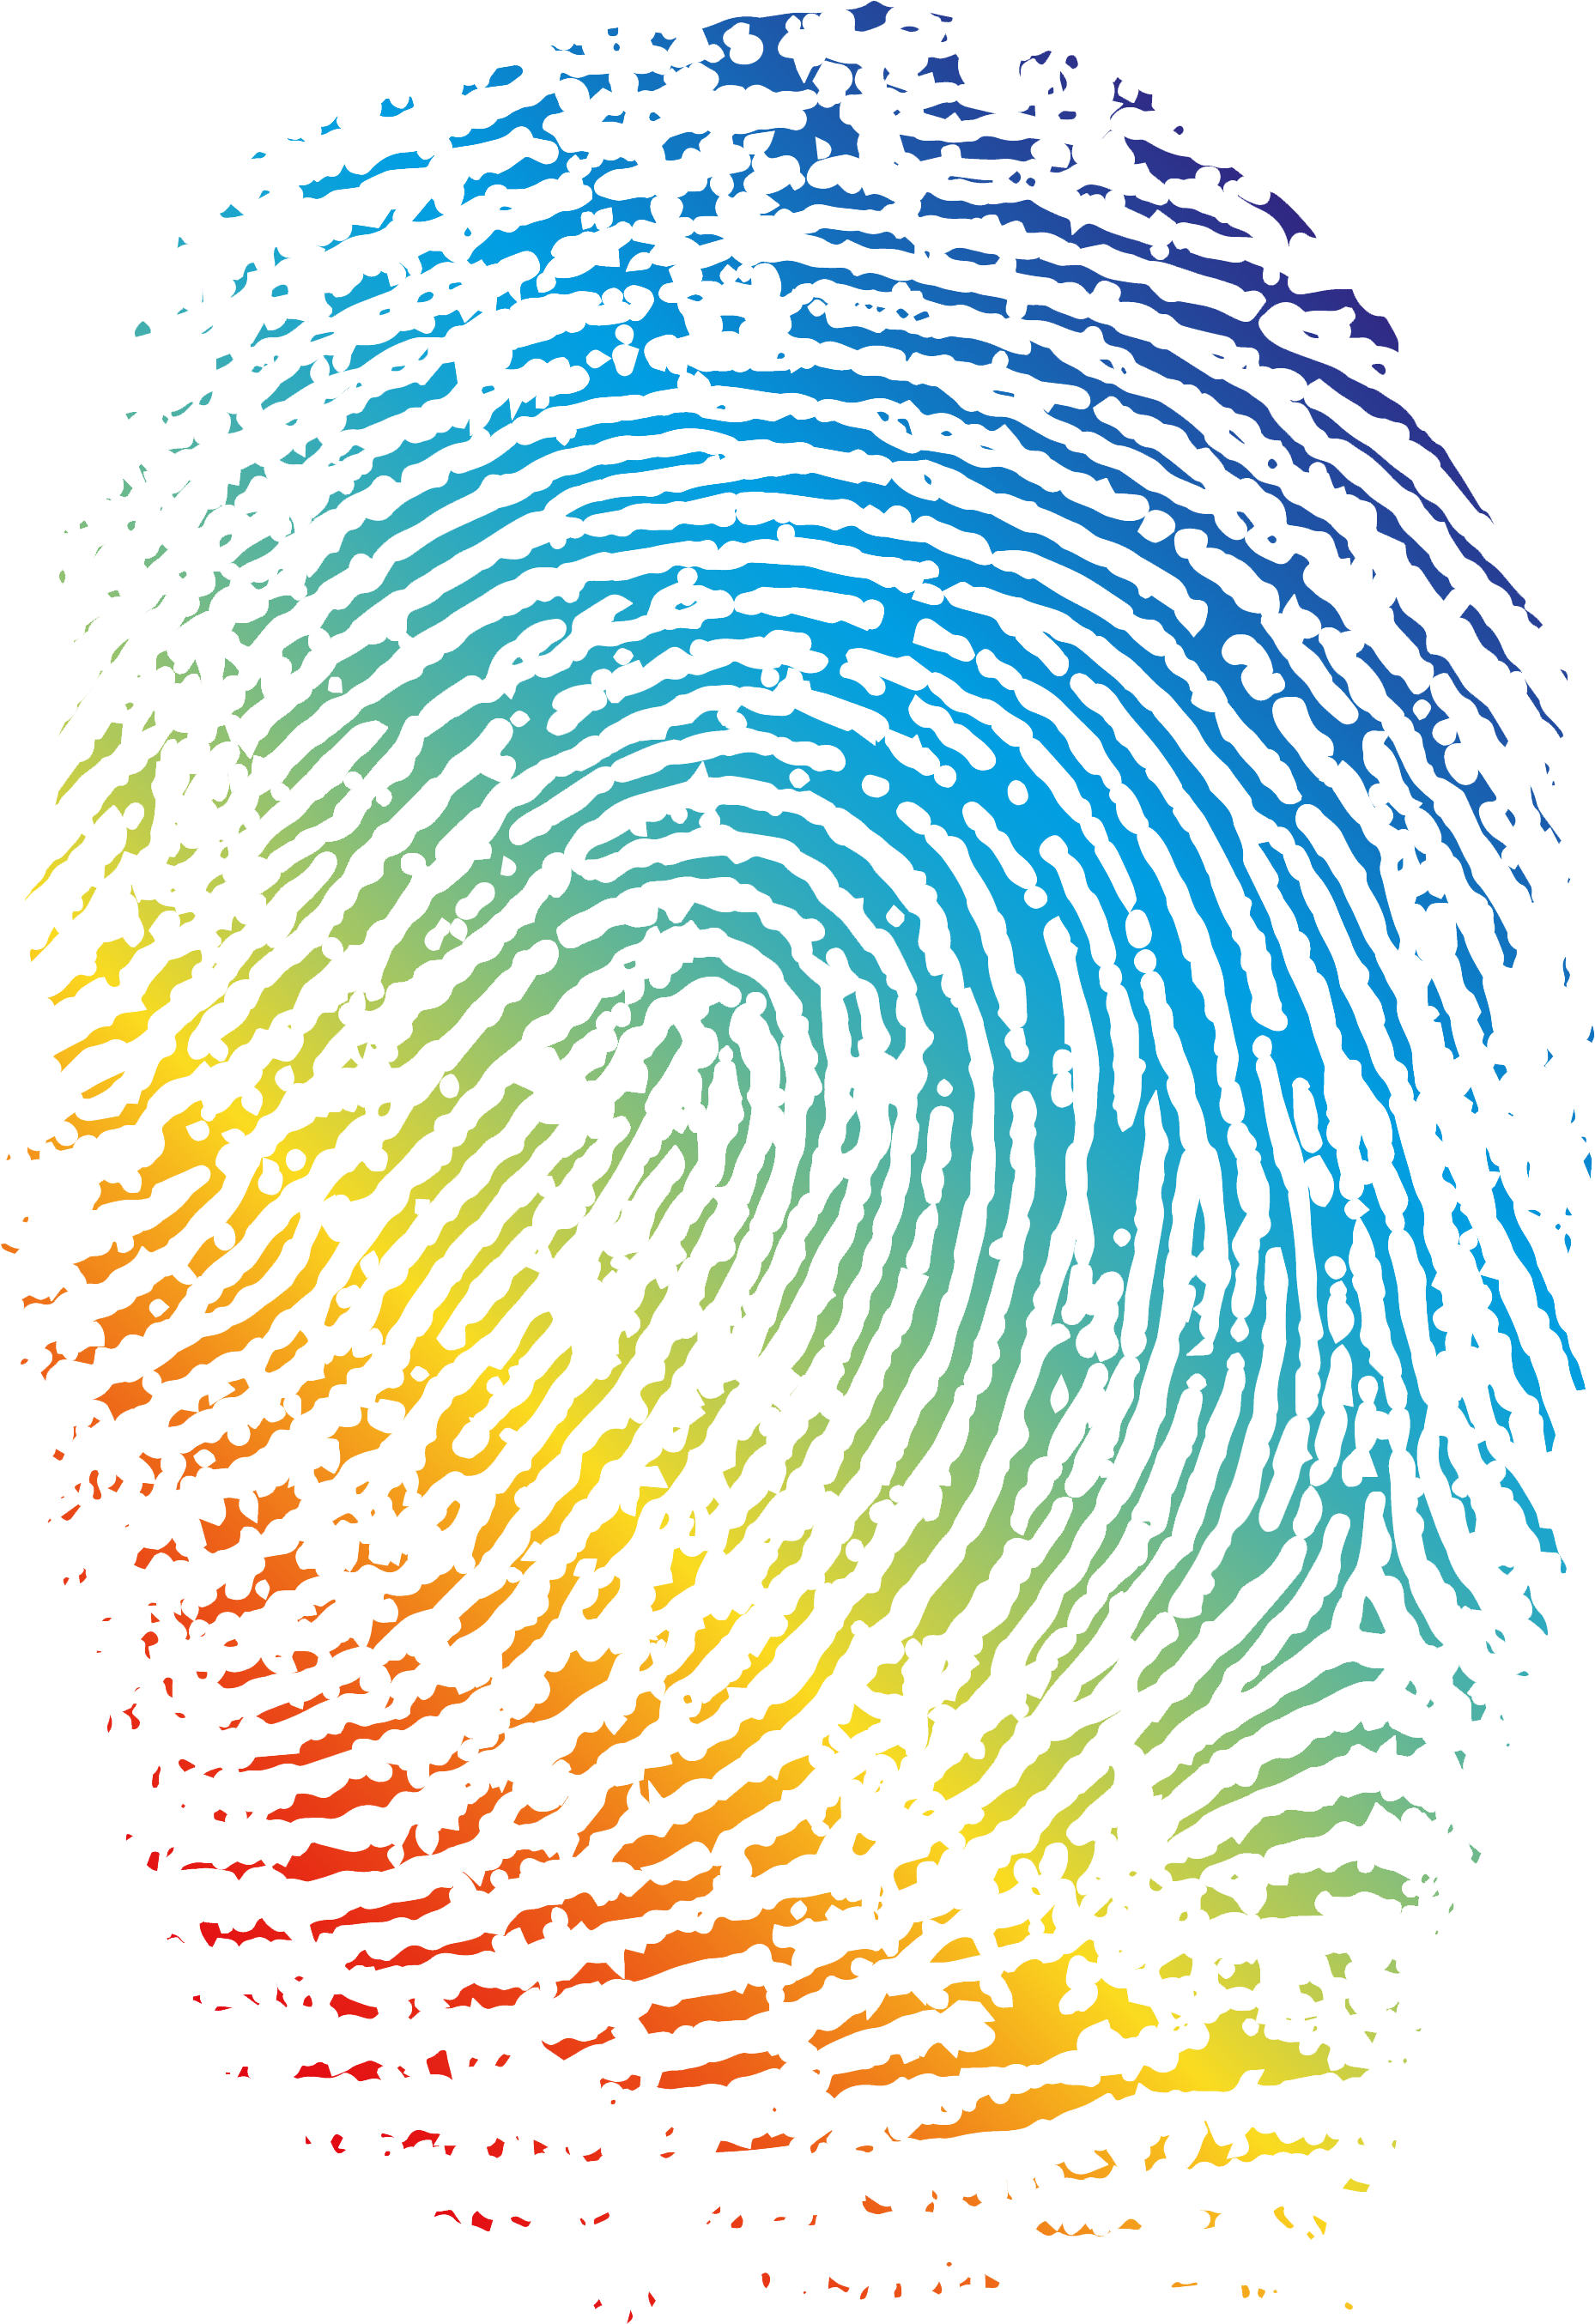 AdobeStock_141344370_gekauft_fingerprint-new